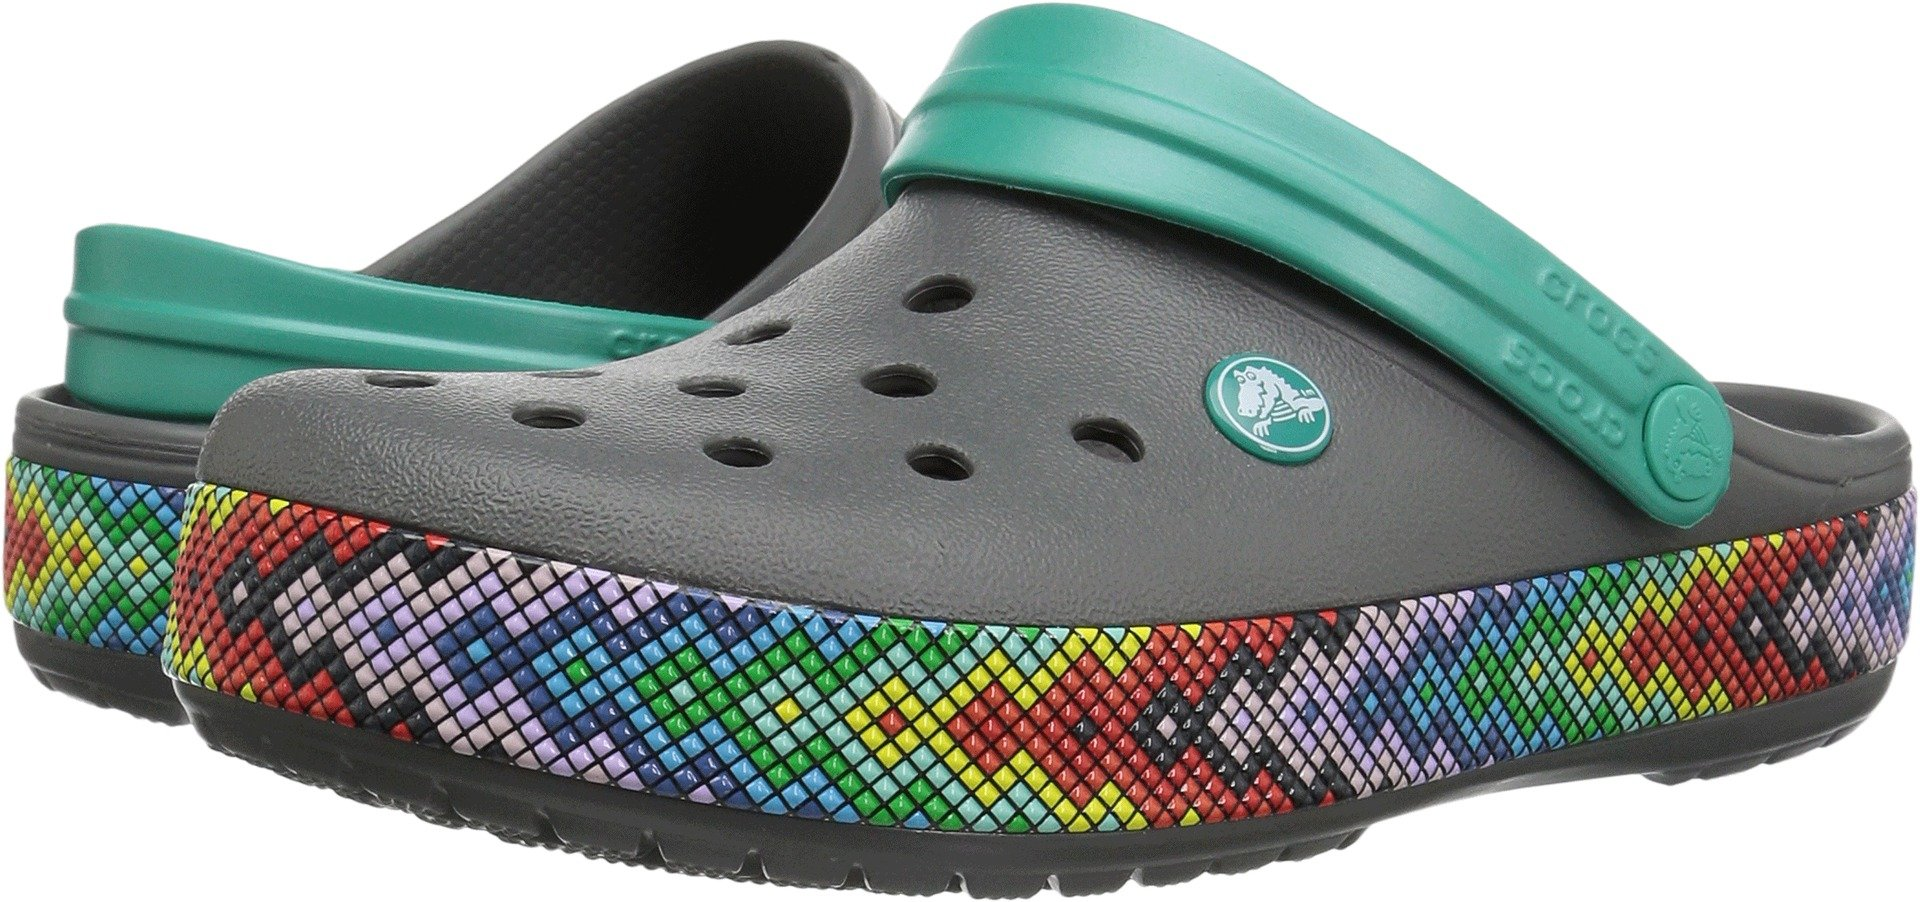 Crocs Crocband Gallery Clog, Slate Grey, 7 US Men/ 9 US Women M US by Crocs